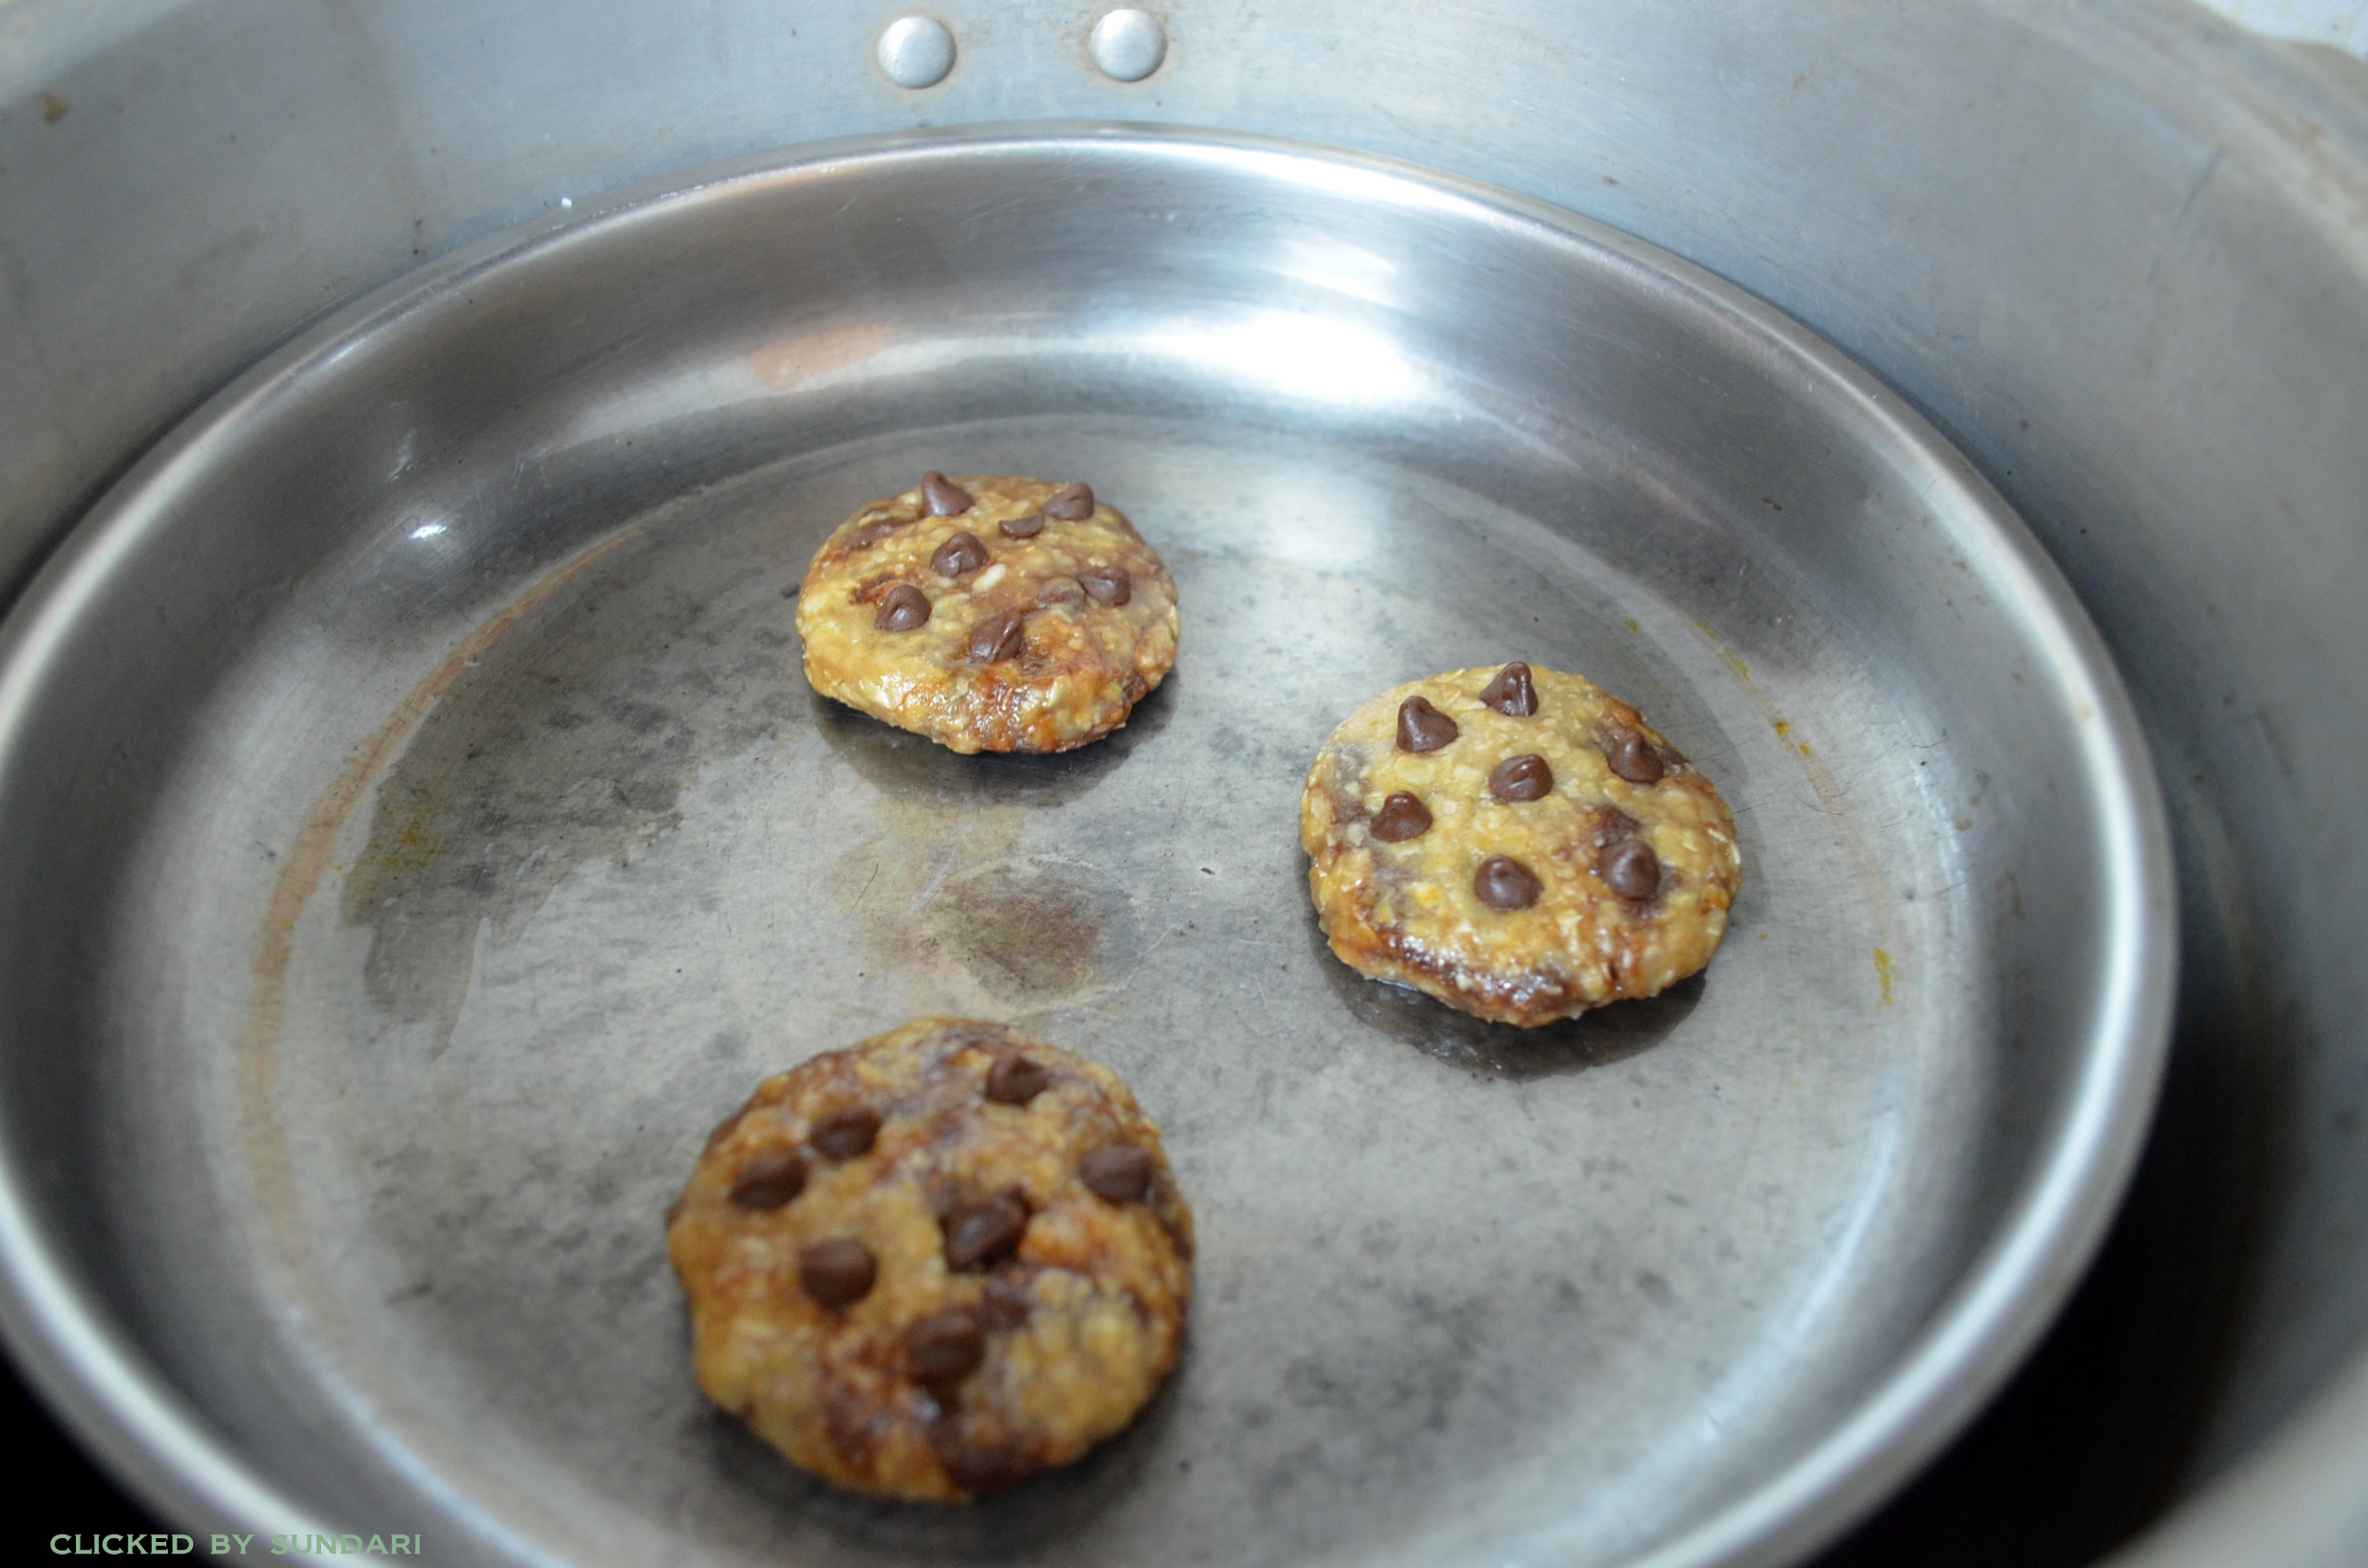 Eggless Oatmeal Cookies Recipe - Place the cookies pan inside the cooker